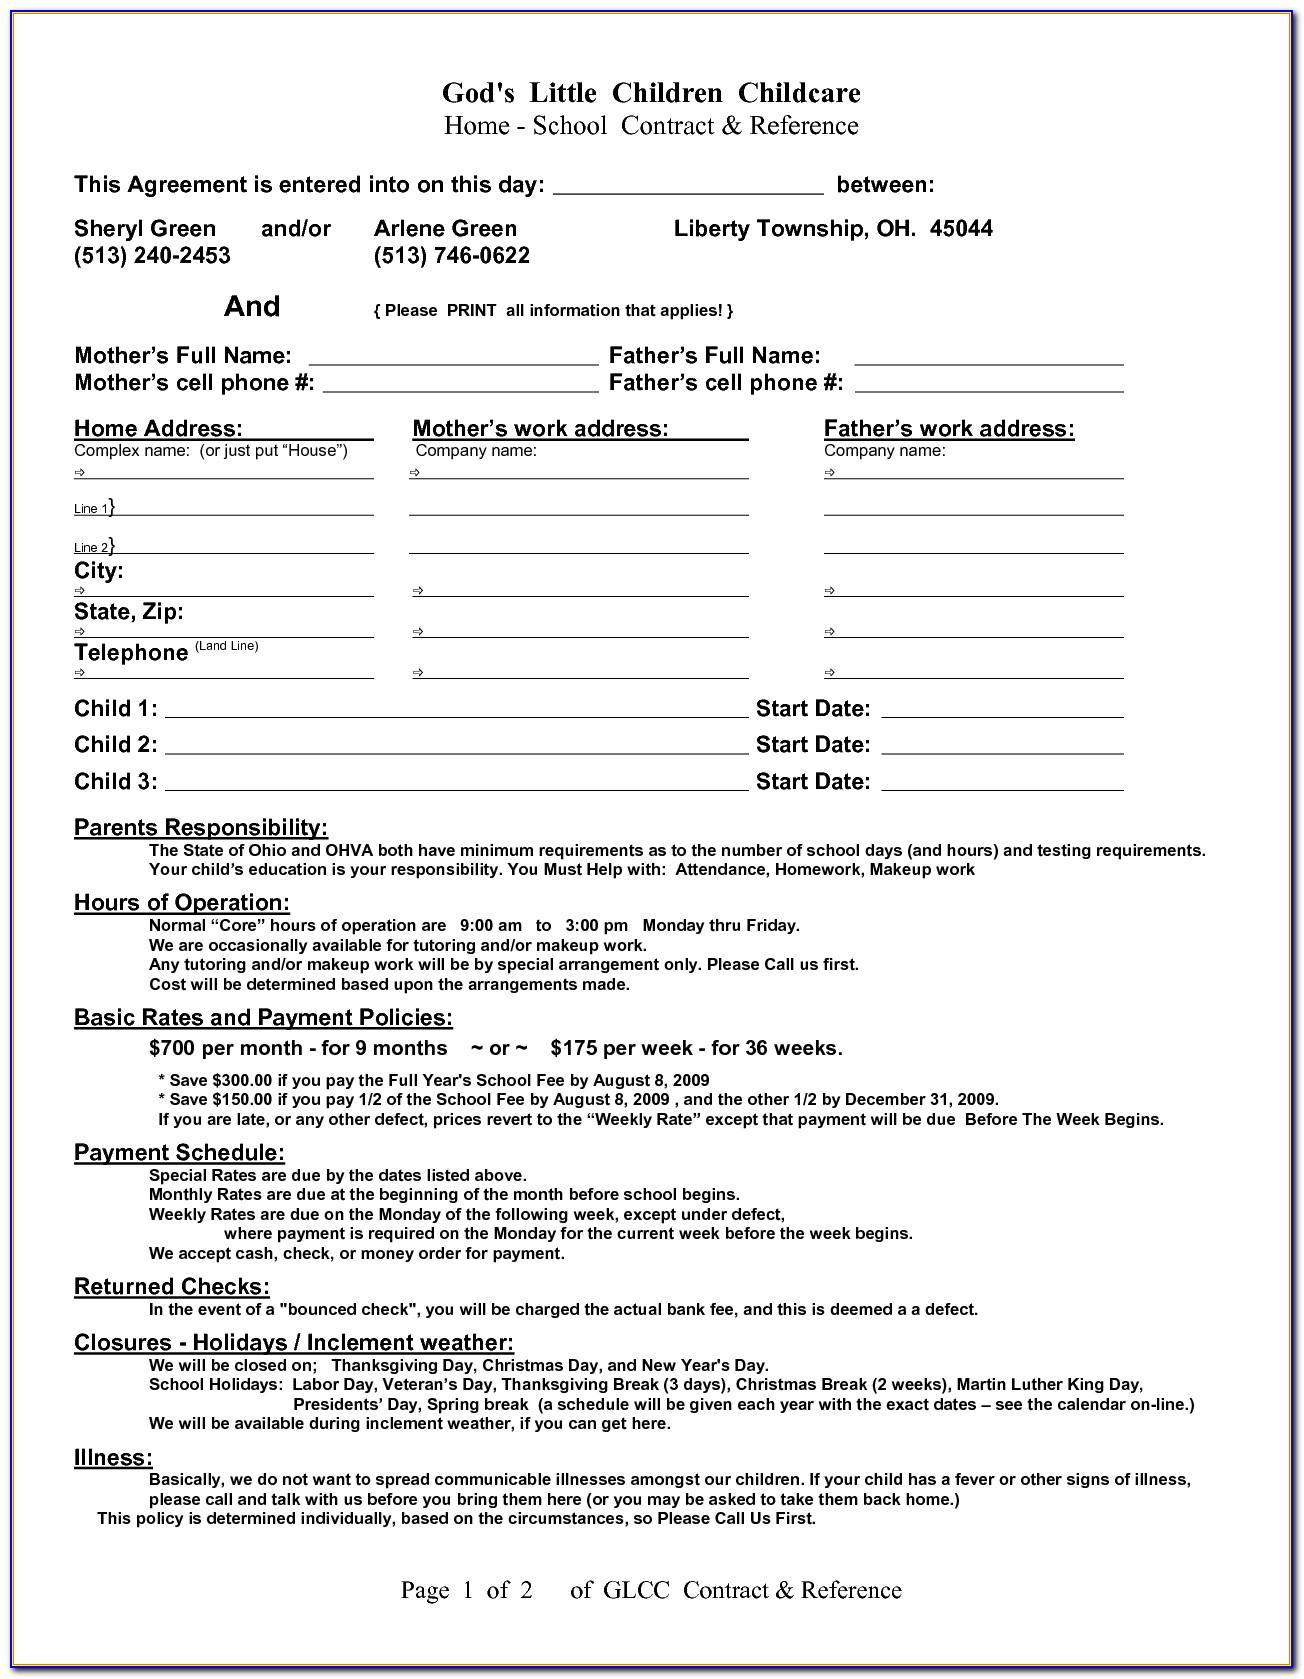 Sample Child Custody Agreement For Unmarried Parents Ontario